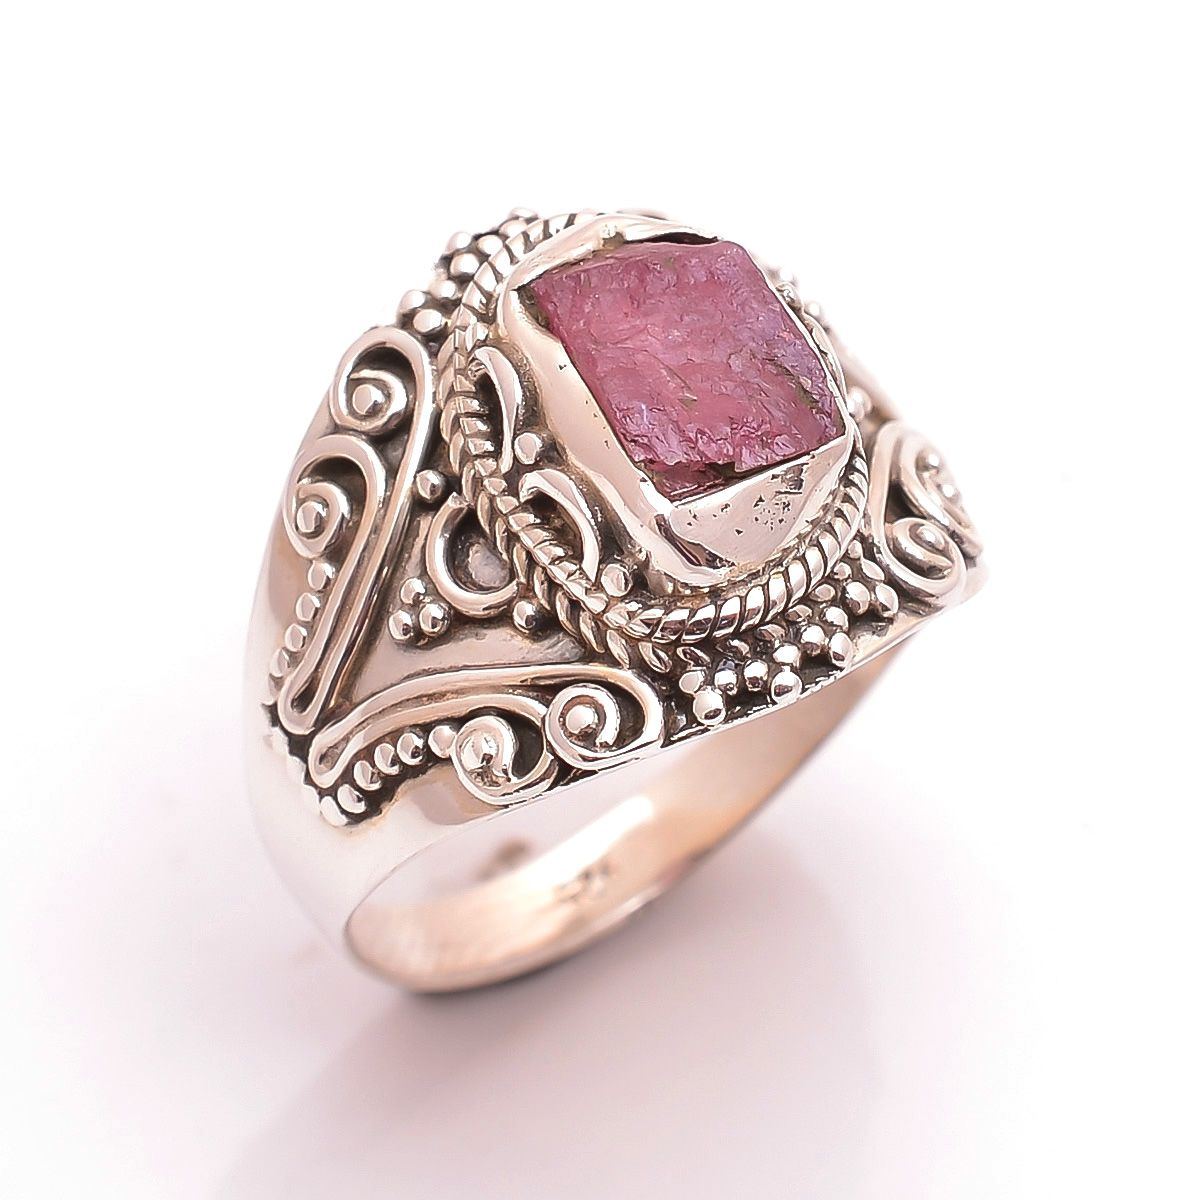 Pink Tourmaline Raw Gemstone 925 Sterling Silver Ring Size 8